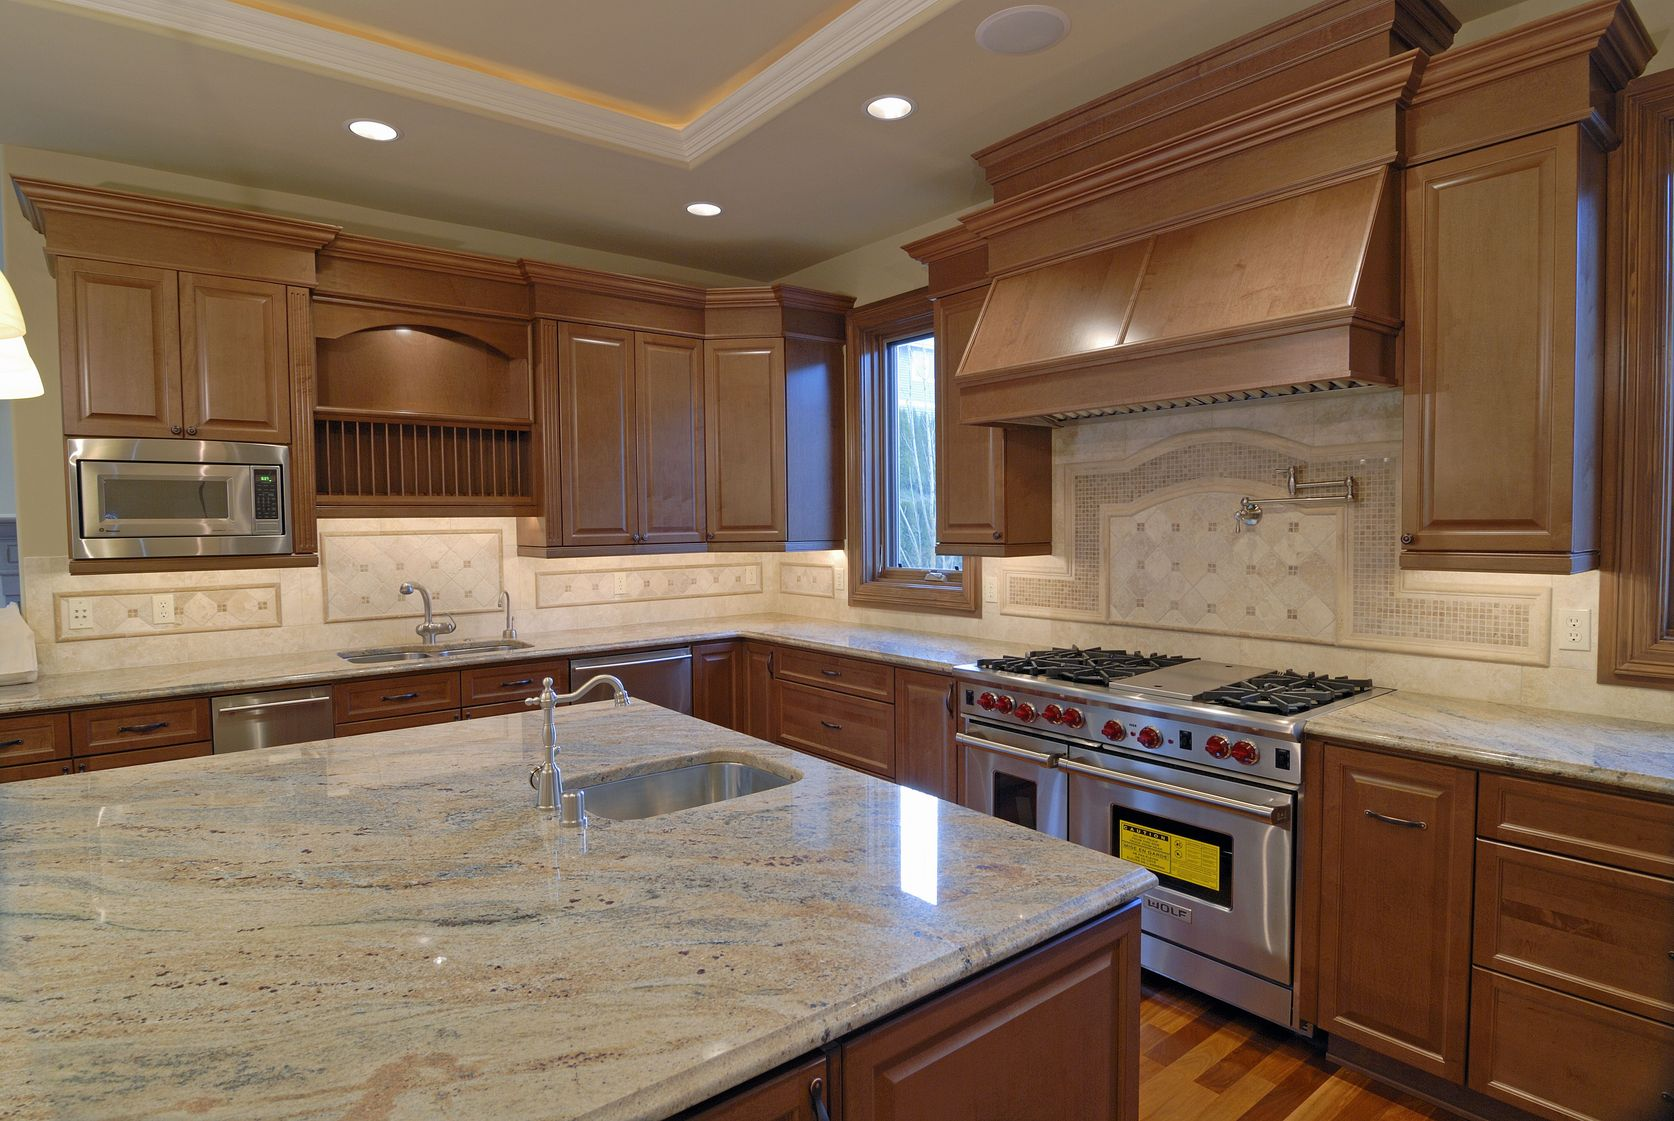 Kitchen Remodeling Tips How To Design A Kitchen With Marble Countertops Amanzi Marble Granite